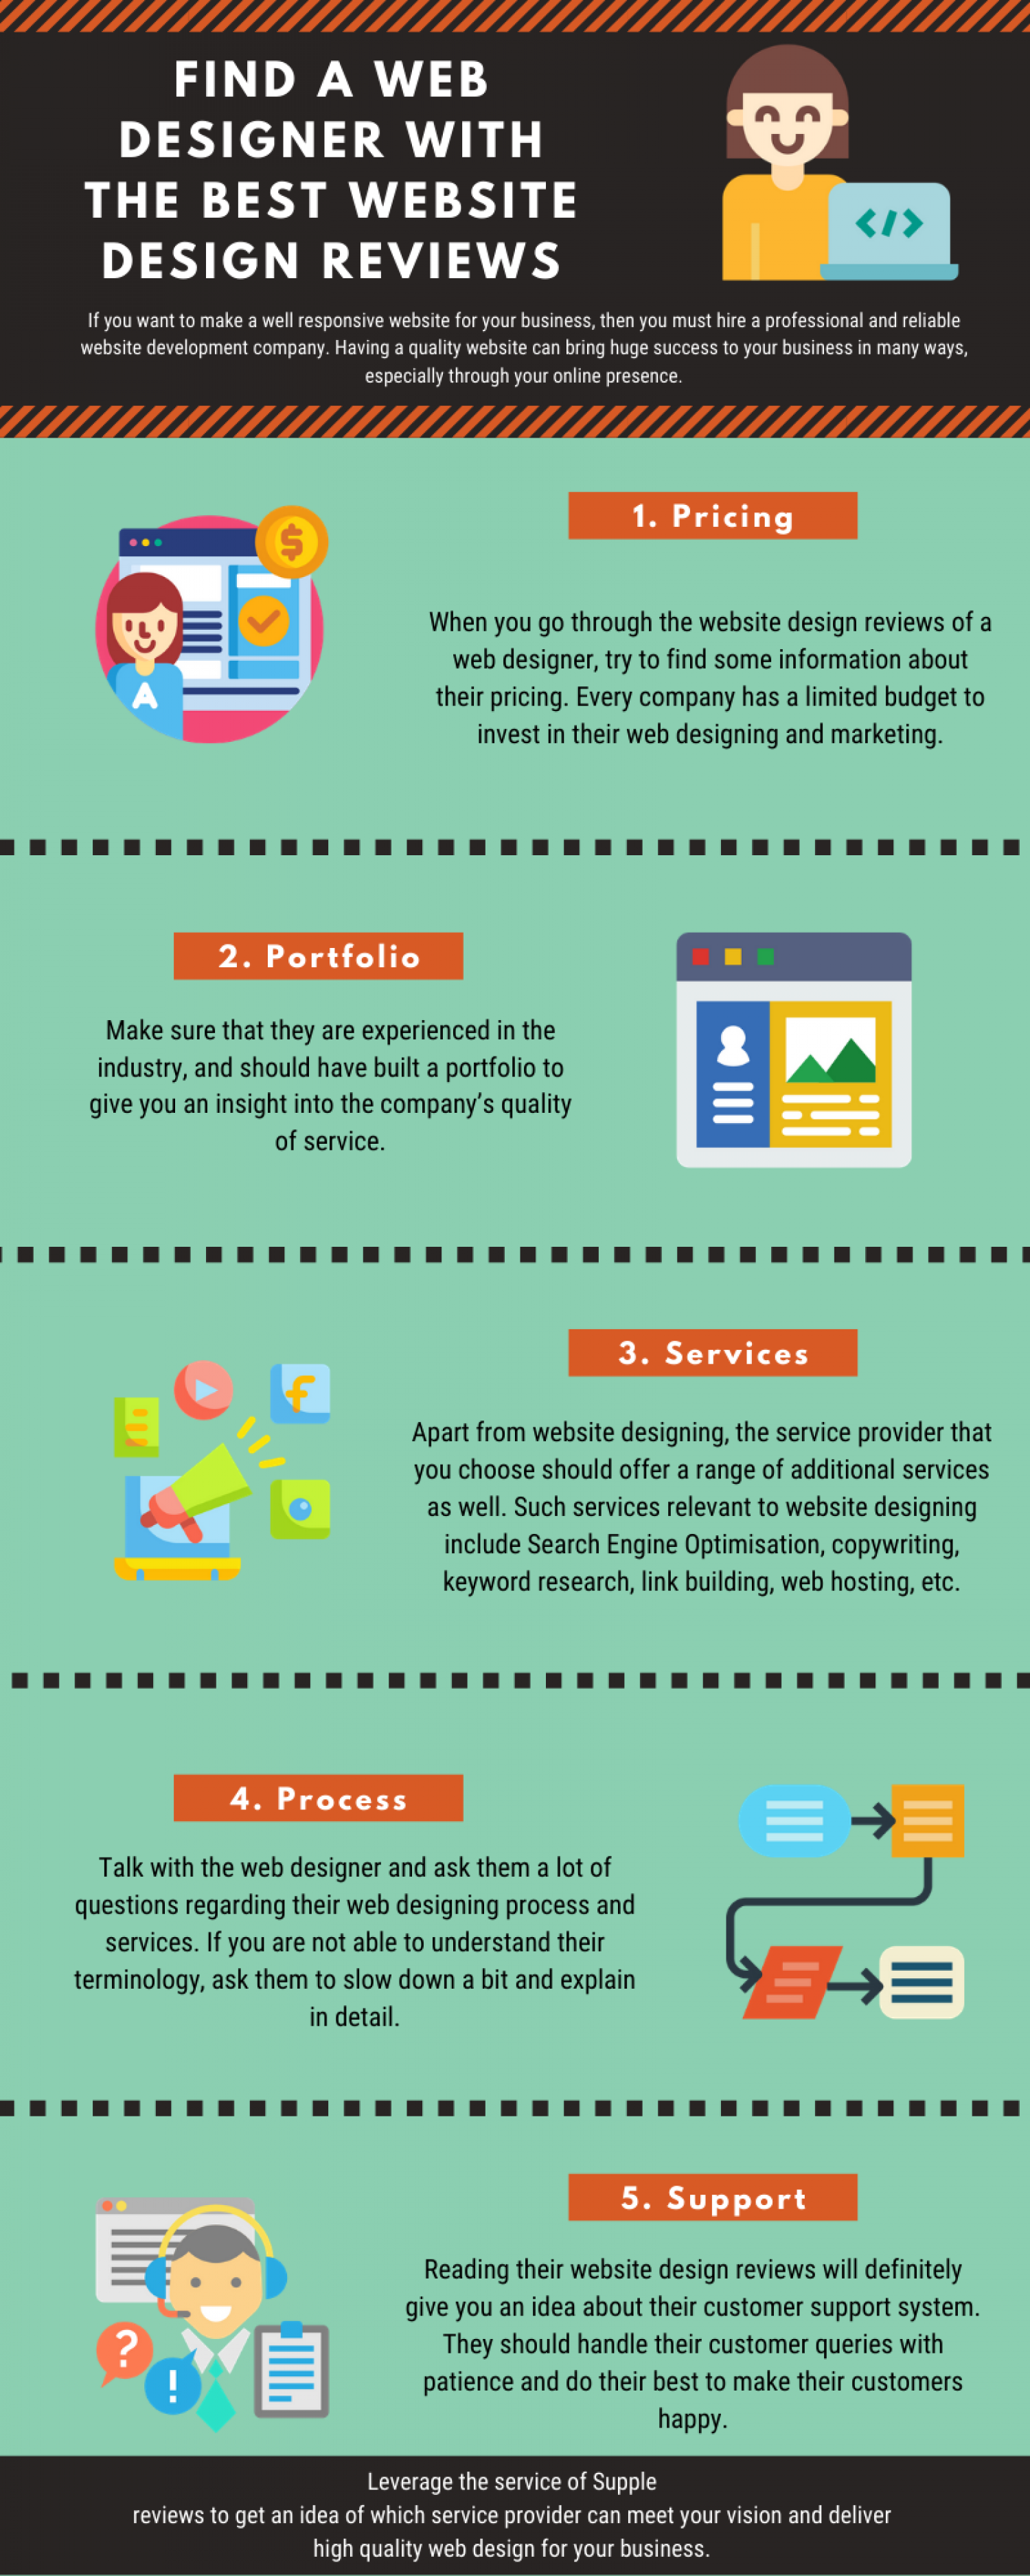 Find a Web Designer With the Best Website Design Reviews Infographic